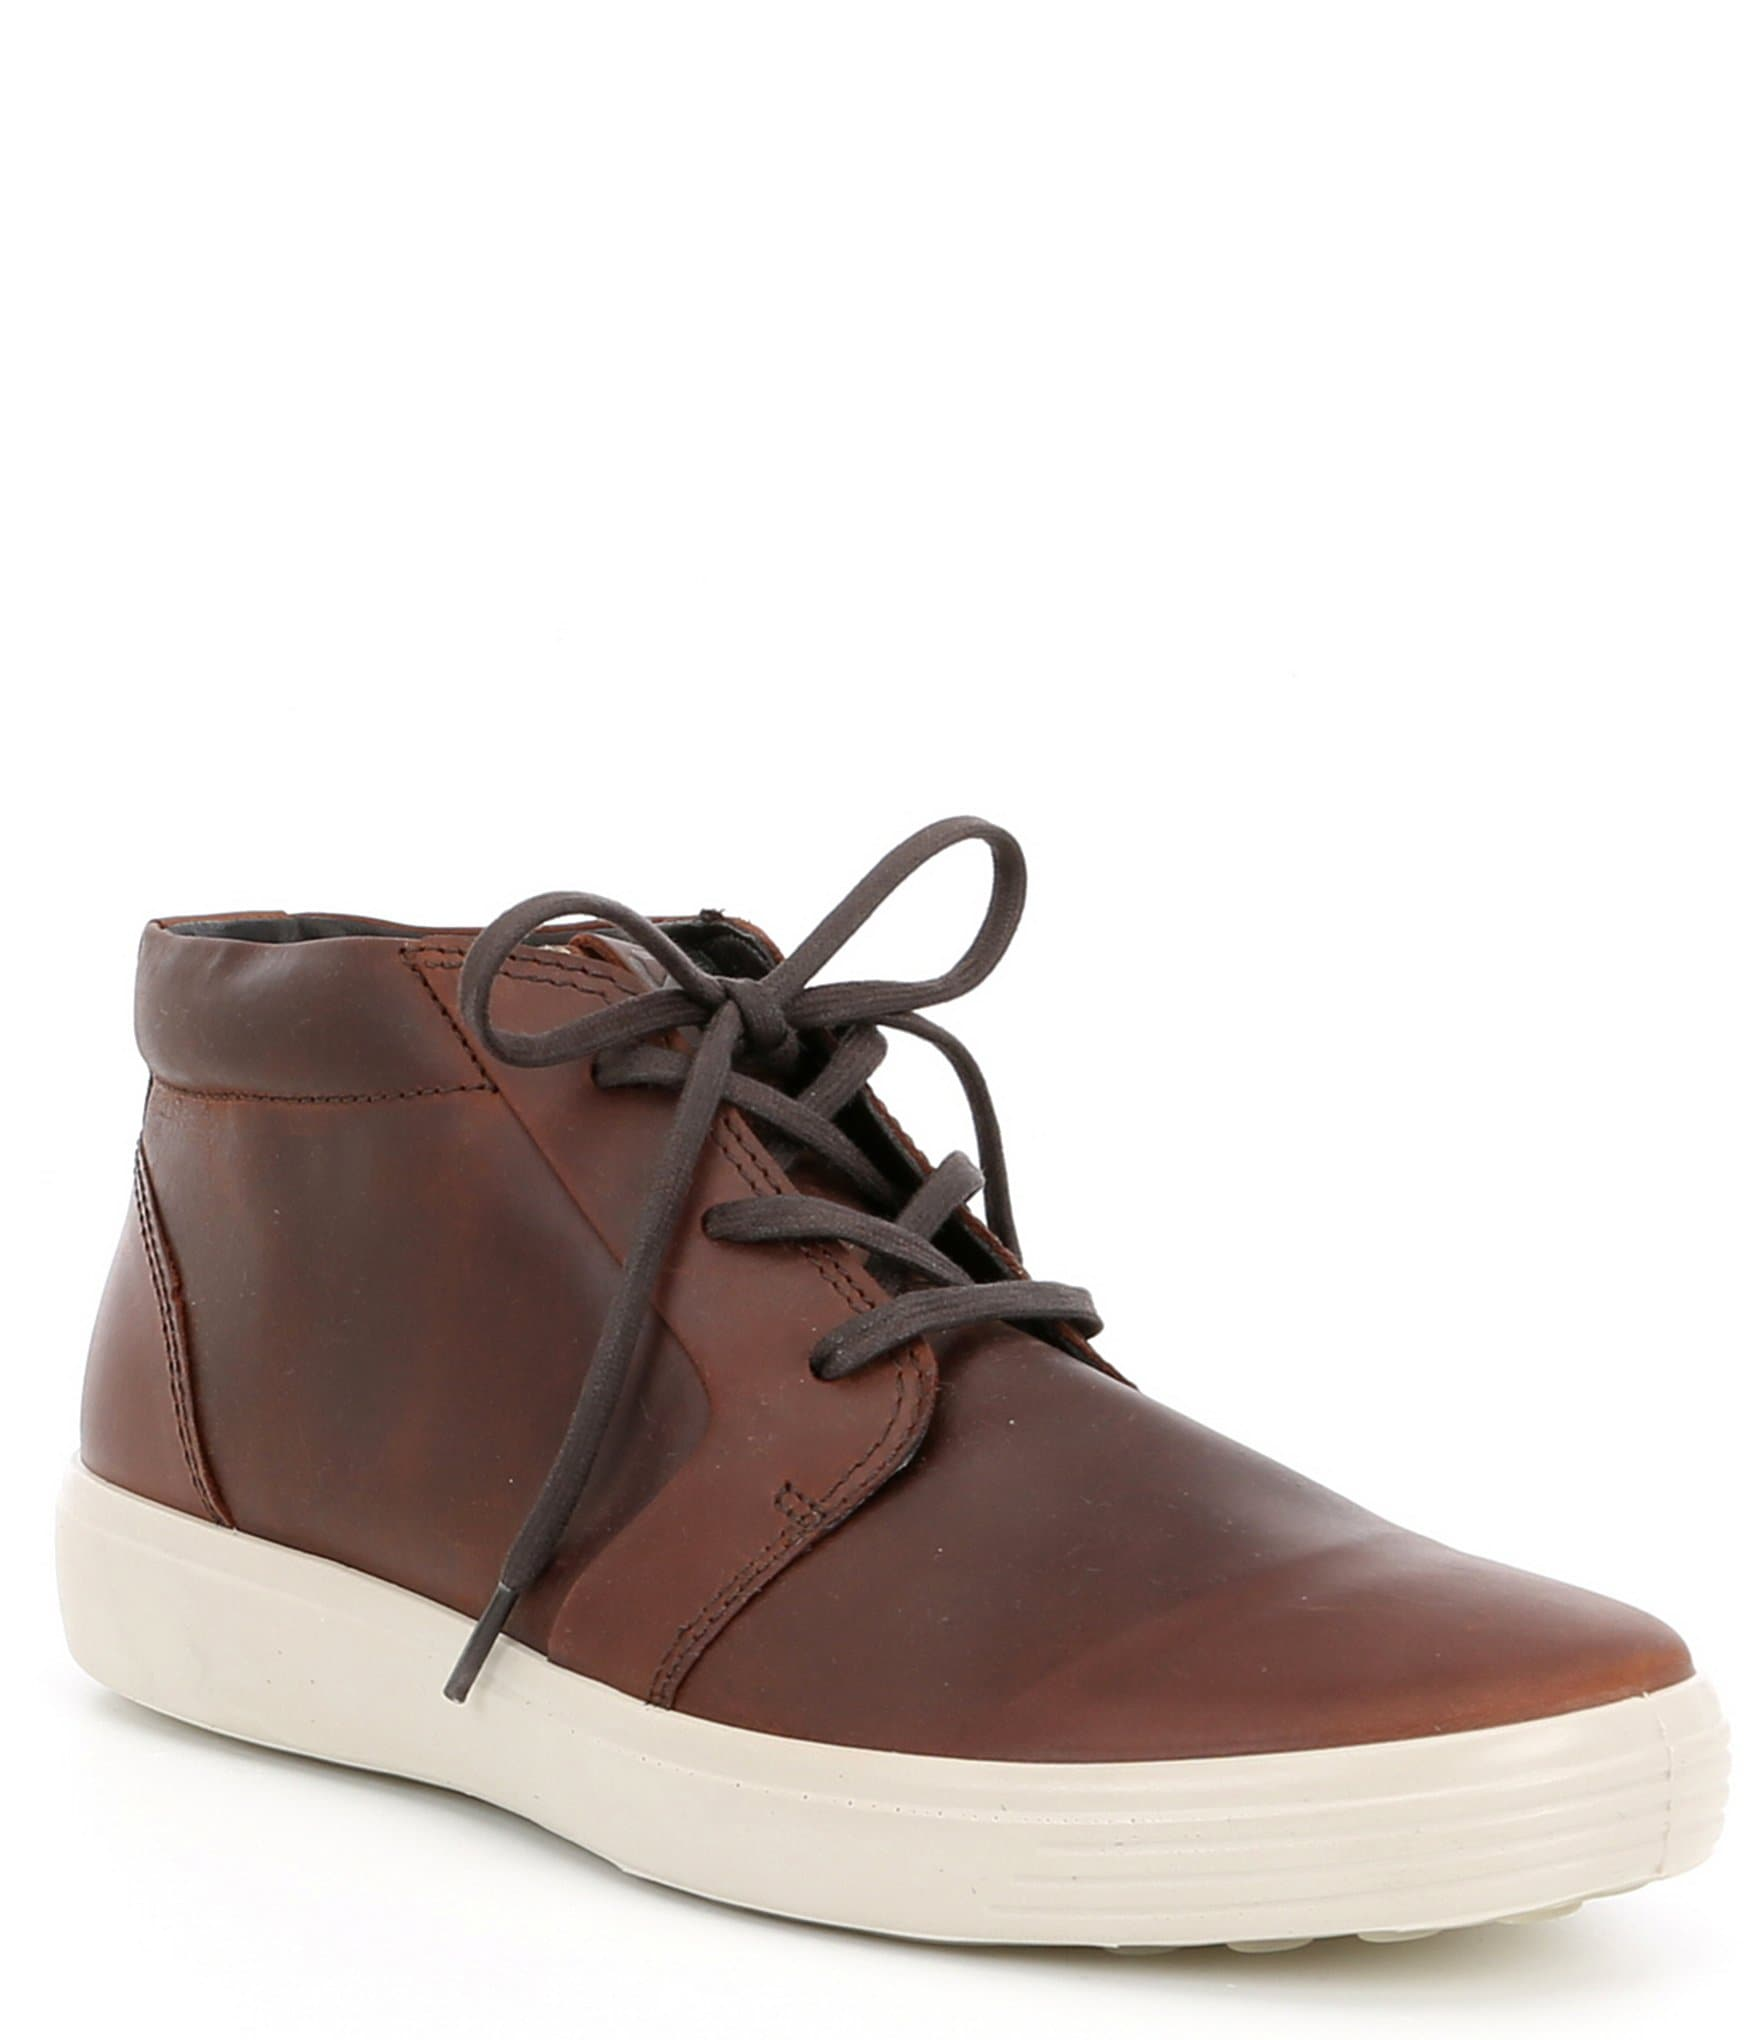 e5527fba ECCO Men's Soft 7 Chukka